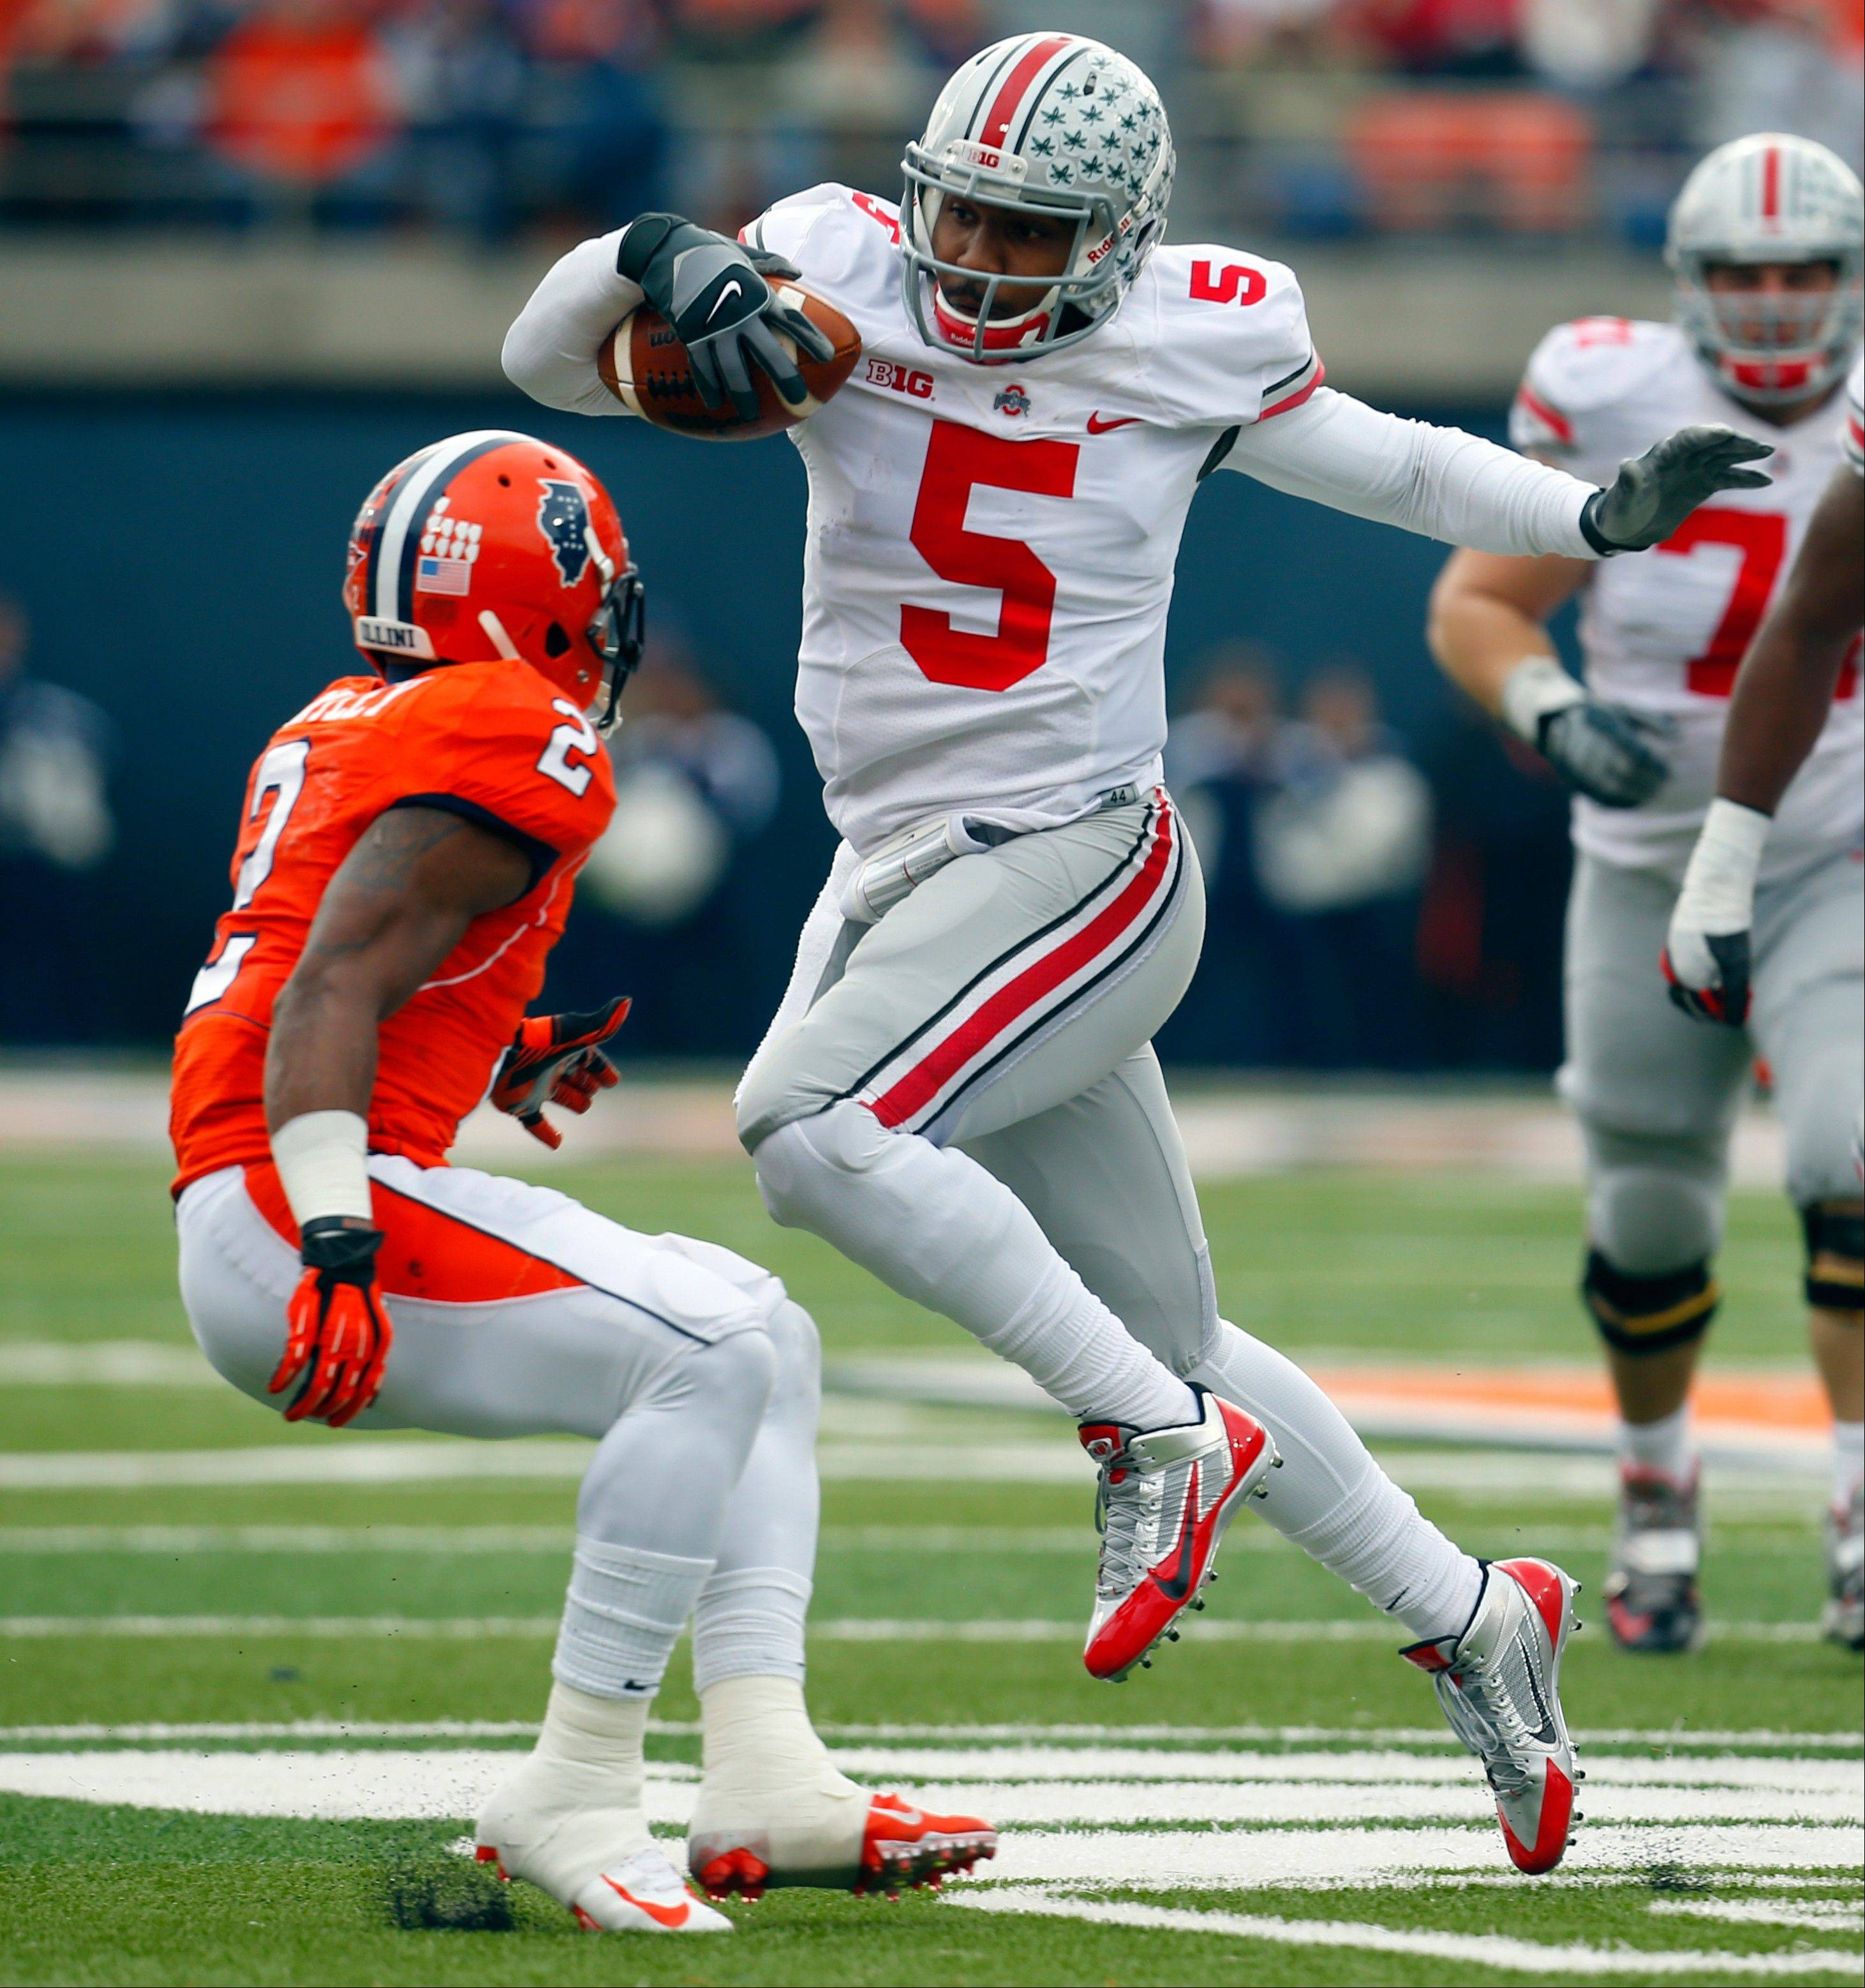 Ohio State quarterback Braxton Miller tries to avoid Illinois defensive back V�Angelo Bentley during the first half of last Saturday�s game in Champaign, Ill.